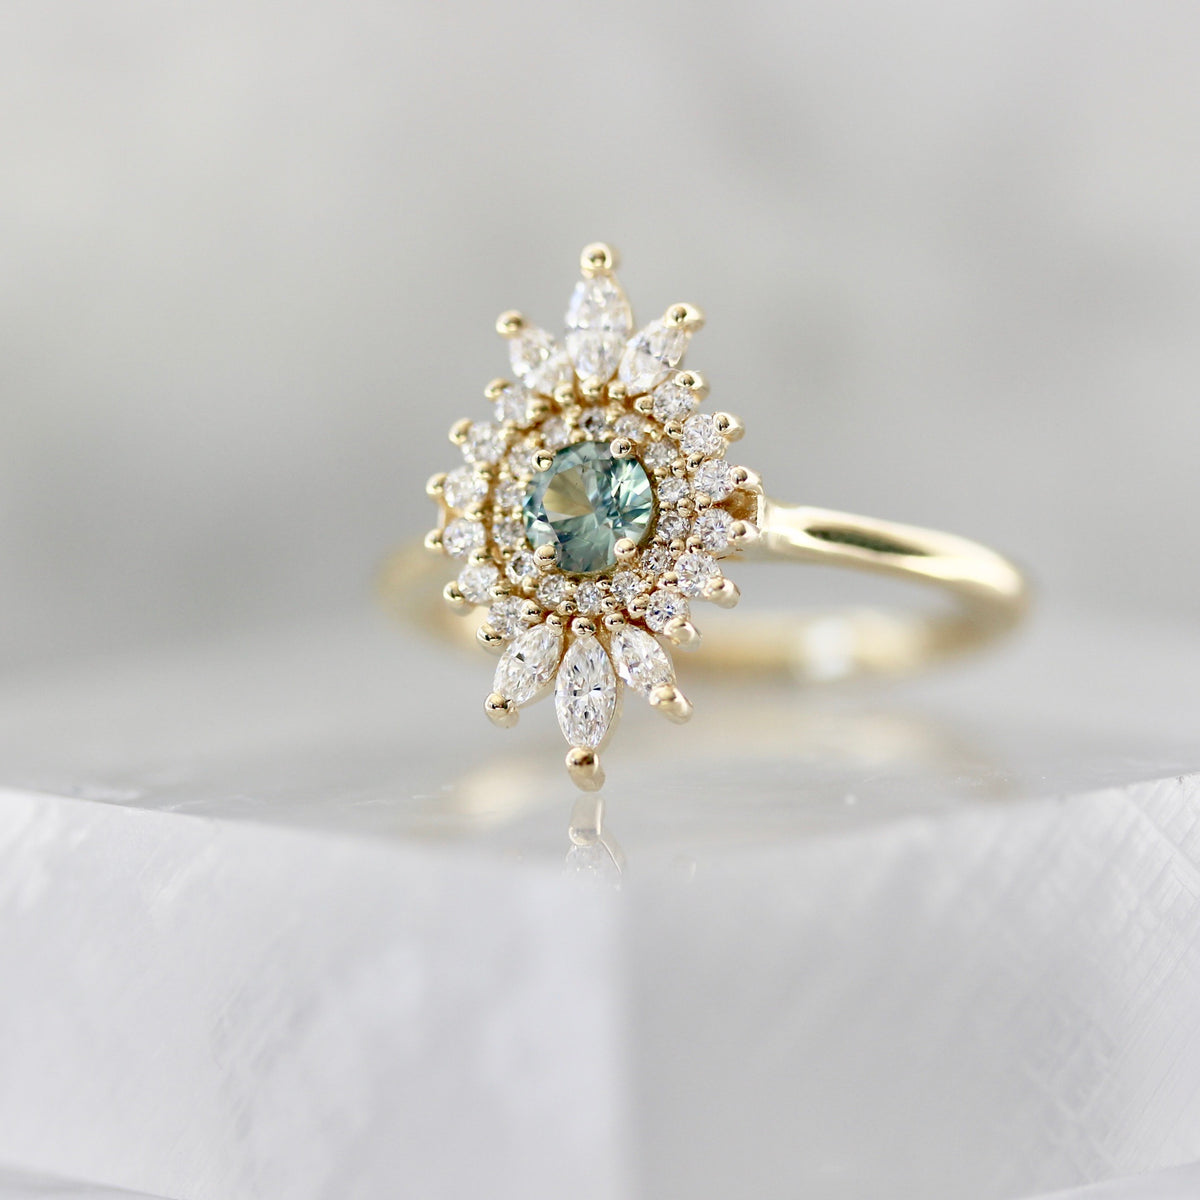 Jules Green Montana Sapphire & Diamond Double Halo Ring